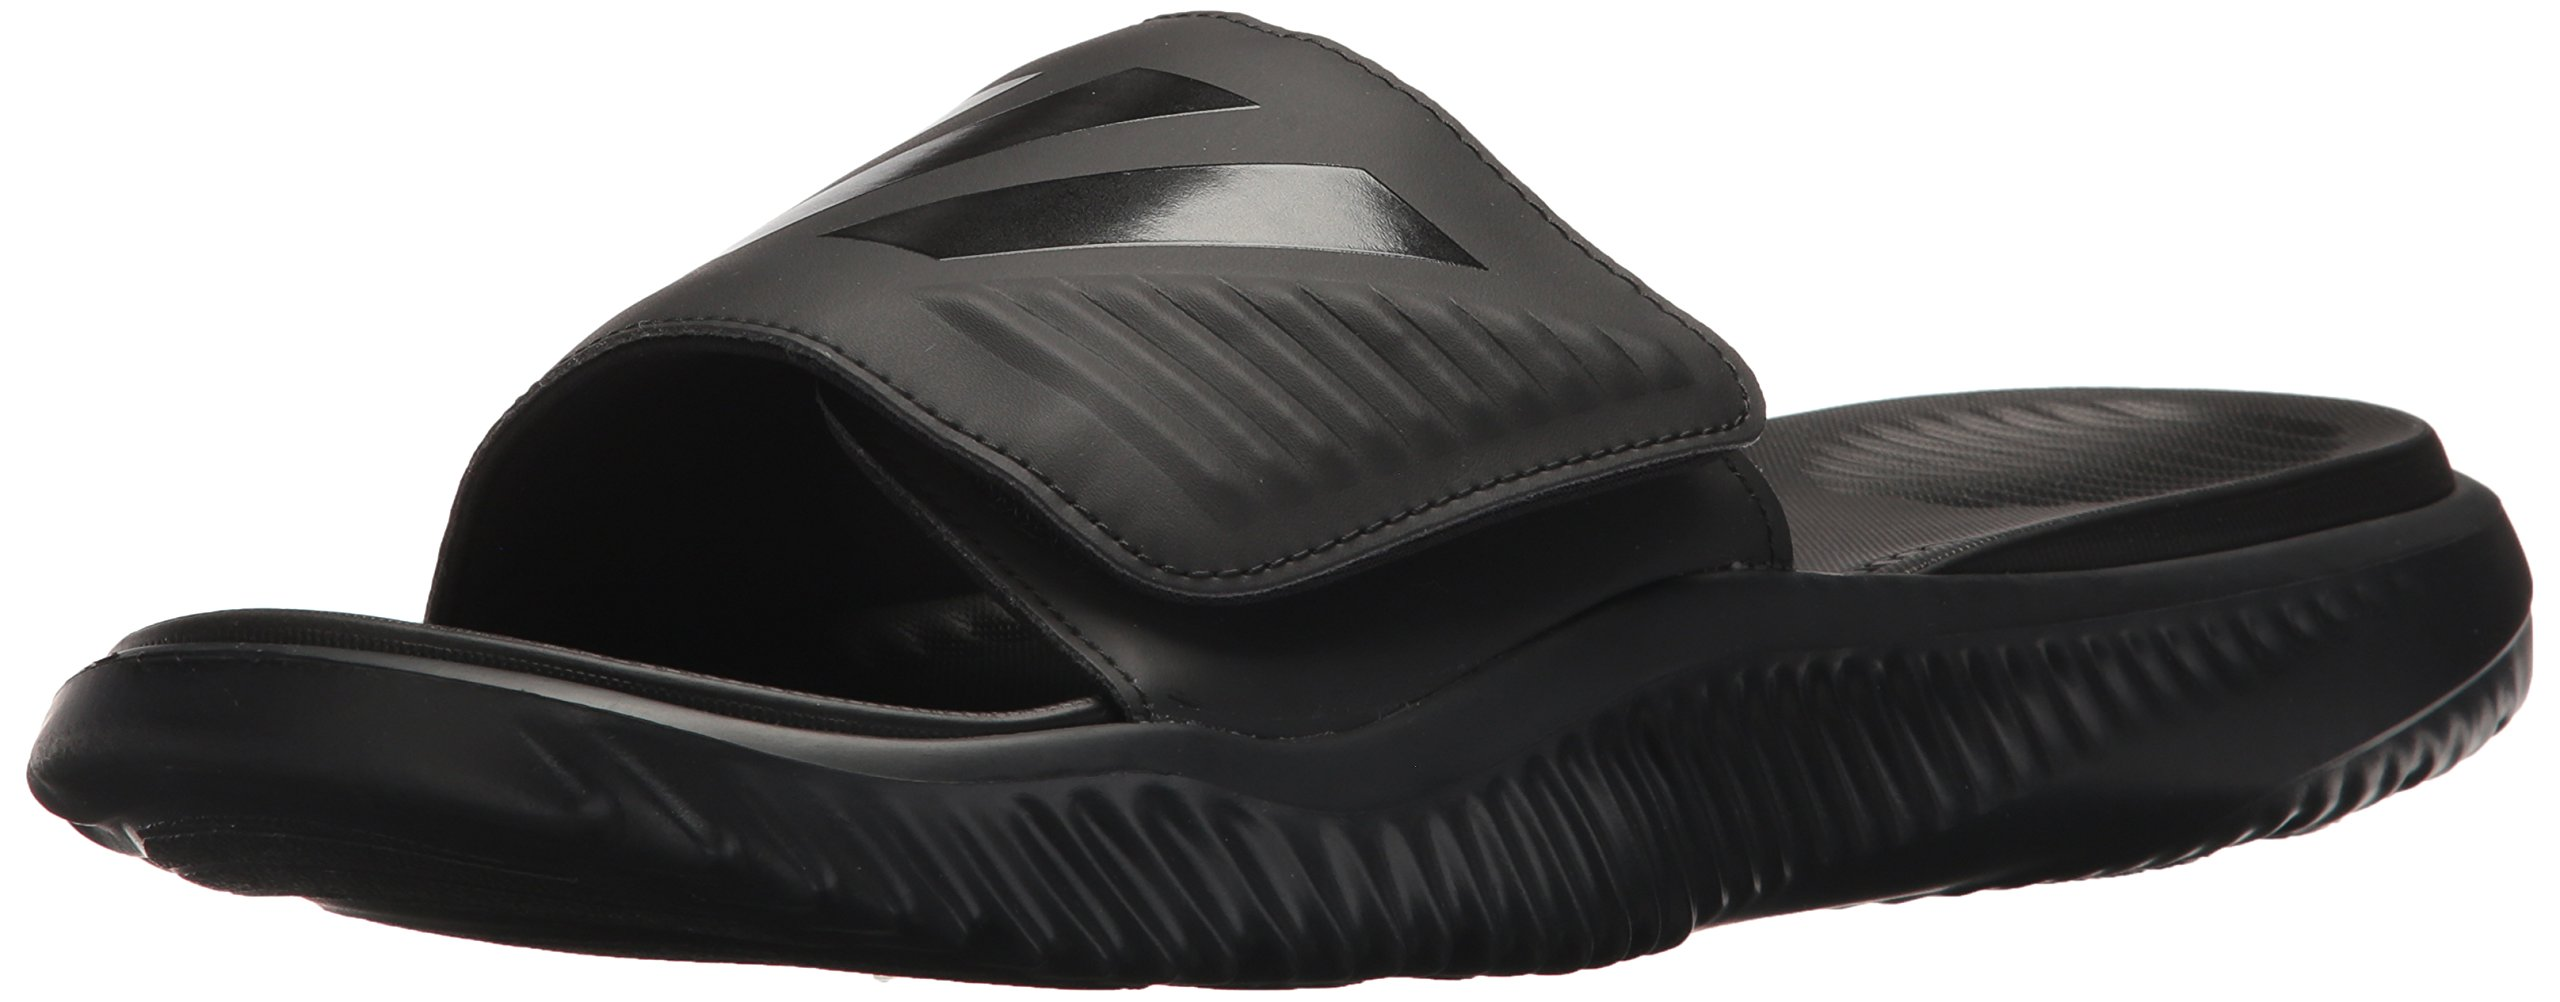 ca85ebd6e76 Buy adidas Originals Mens Alphabounce Slide Sport Sandal in Cheap ...